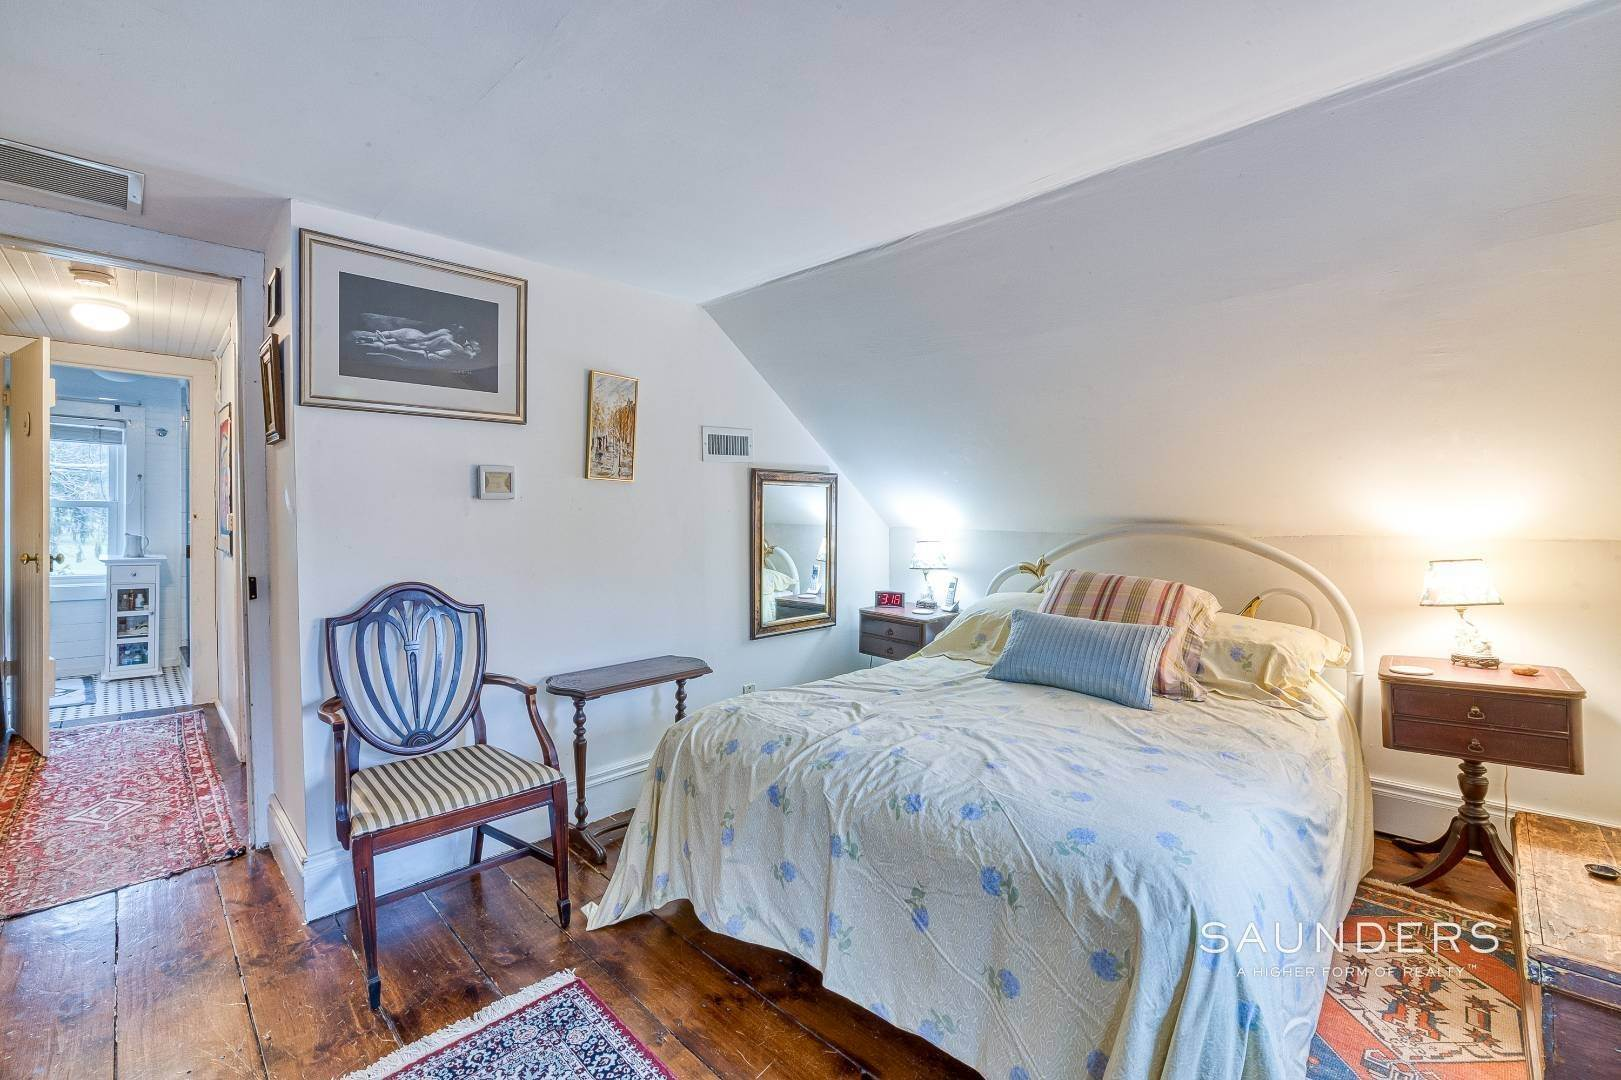 29. Single Family Homes for Sale at Shelter Island 1899 Farmhouse Close To Beach-Business Zoned 33 West Neck Road, Shelter Island Heights, Shelter Island, NY 11964